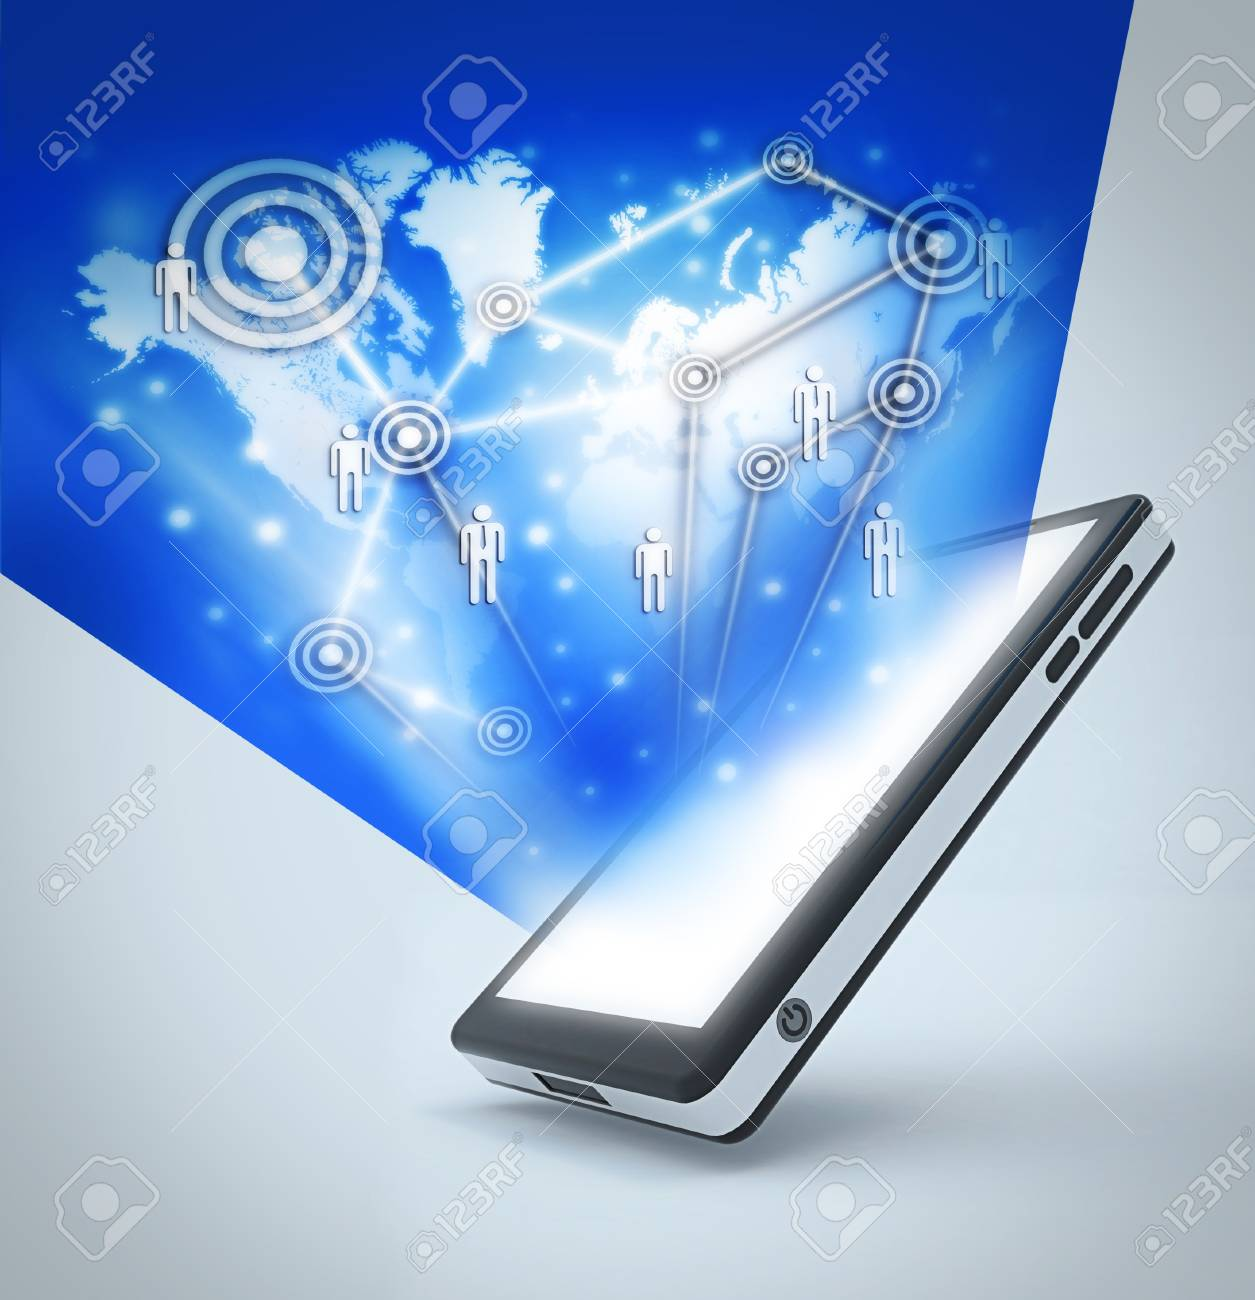 Communication technology with mobile phone to Making the world smaller Stock Photo - 18968190